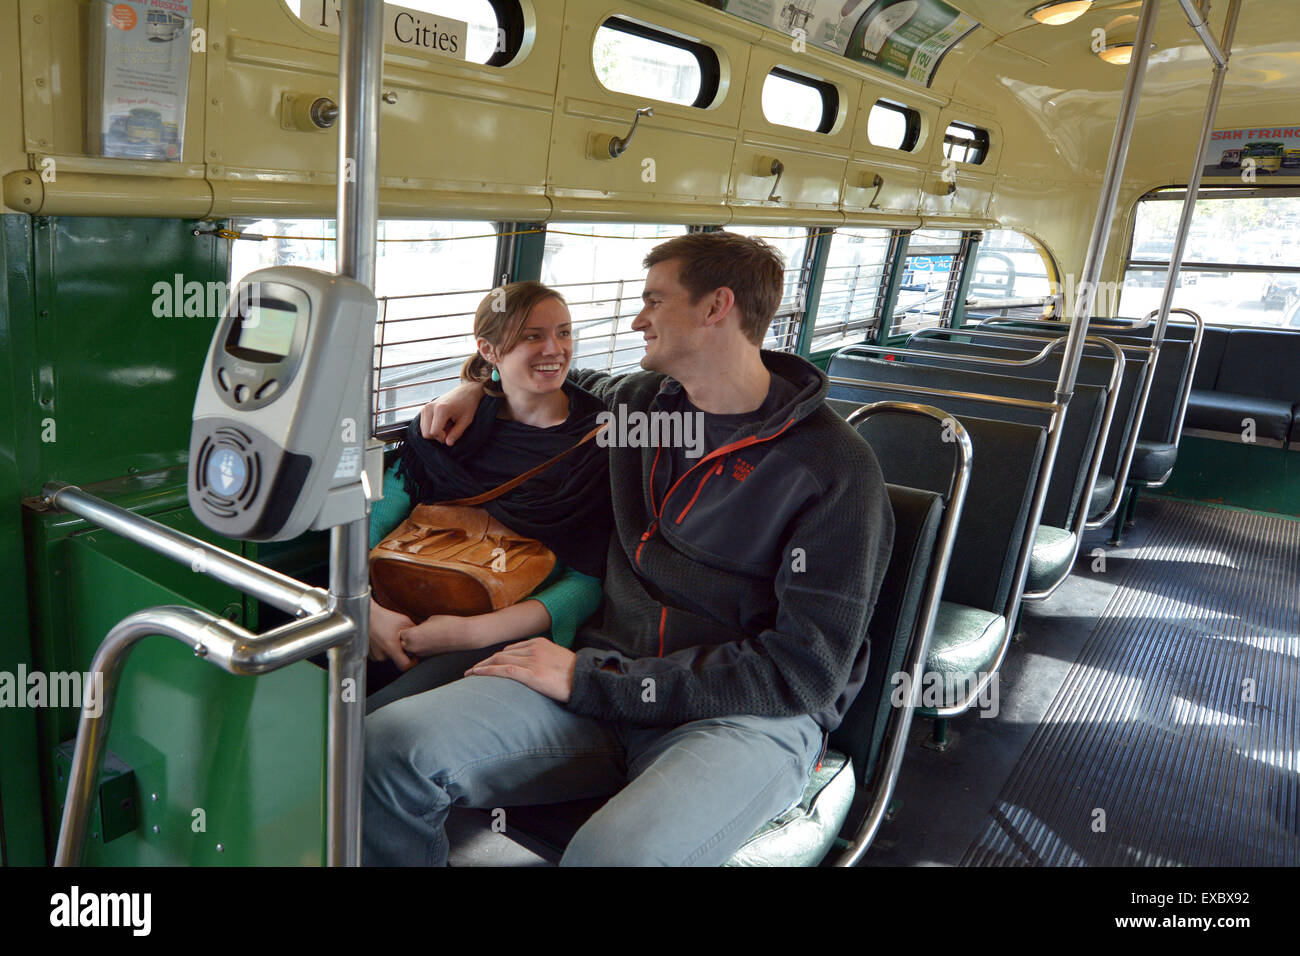 SAN FRANCISCO - MAY 15 2015:Happy American couple ride on San Francisco's original double-ended PCC streetcars. - Stock Image